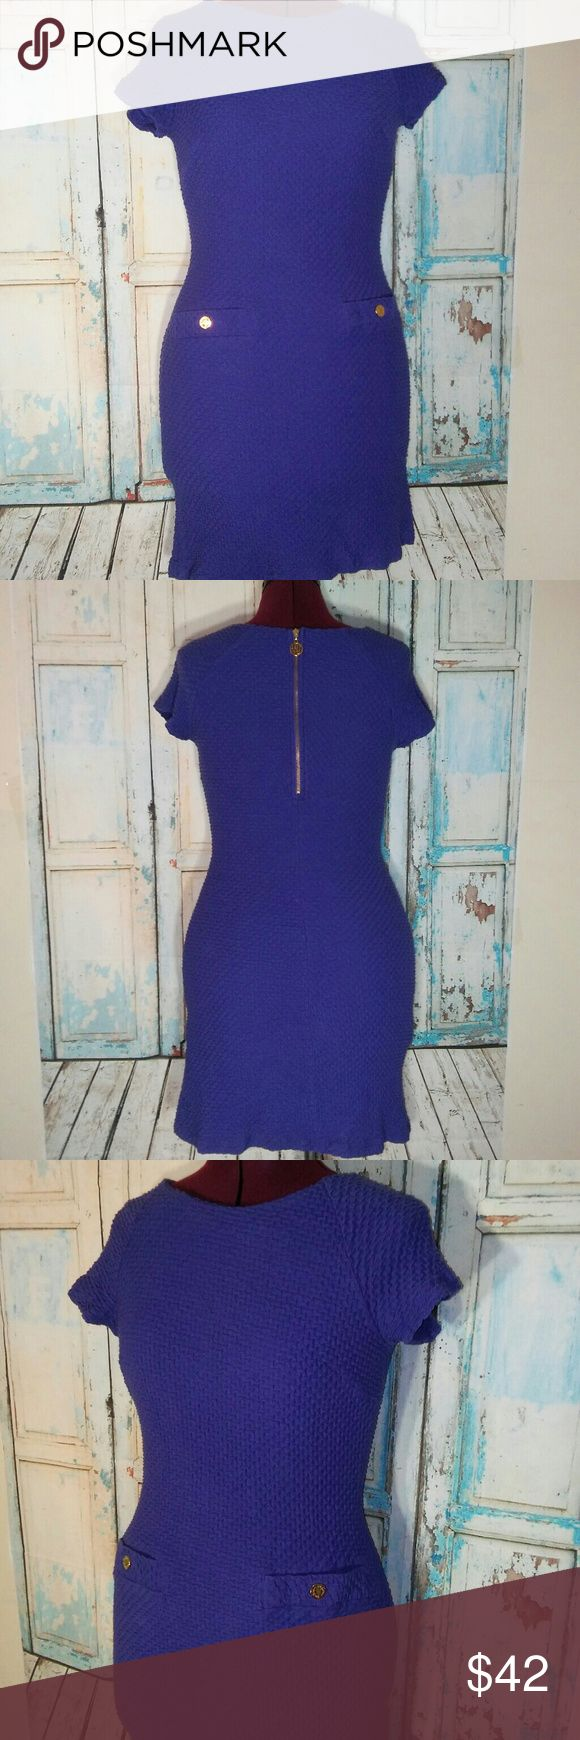 """Lily Pultizer Coco Shift Dress Brand: Lily pultizer Color: purple Fabric:100% Cotton  Measurements Waist:36"""" Length:34. 1/2"""" Bust:34""""  Fast Shipment Best Offers Accepted NO TRADING  Bundle Discount BIG Lily pultizer Dresses"""